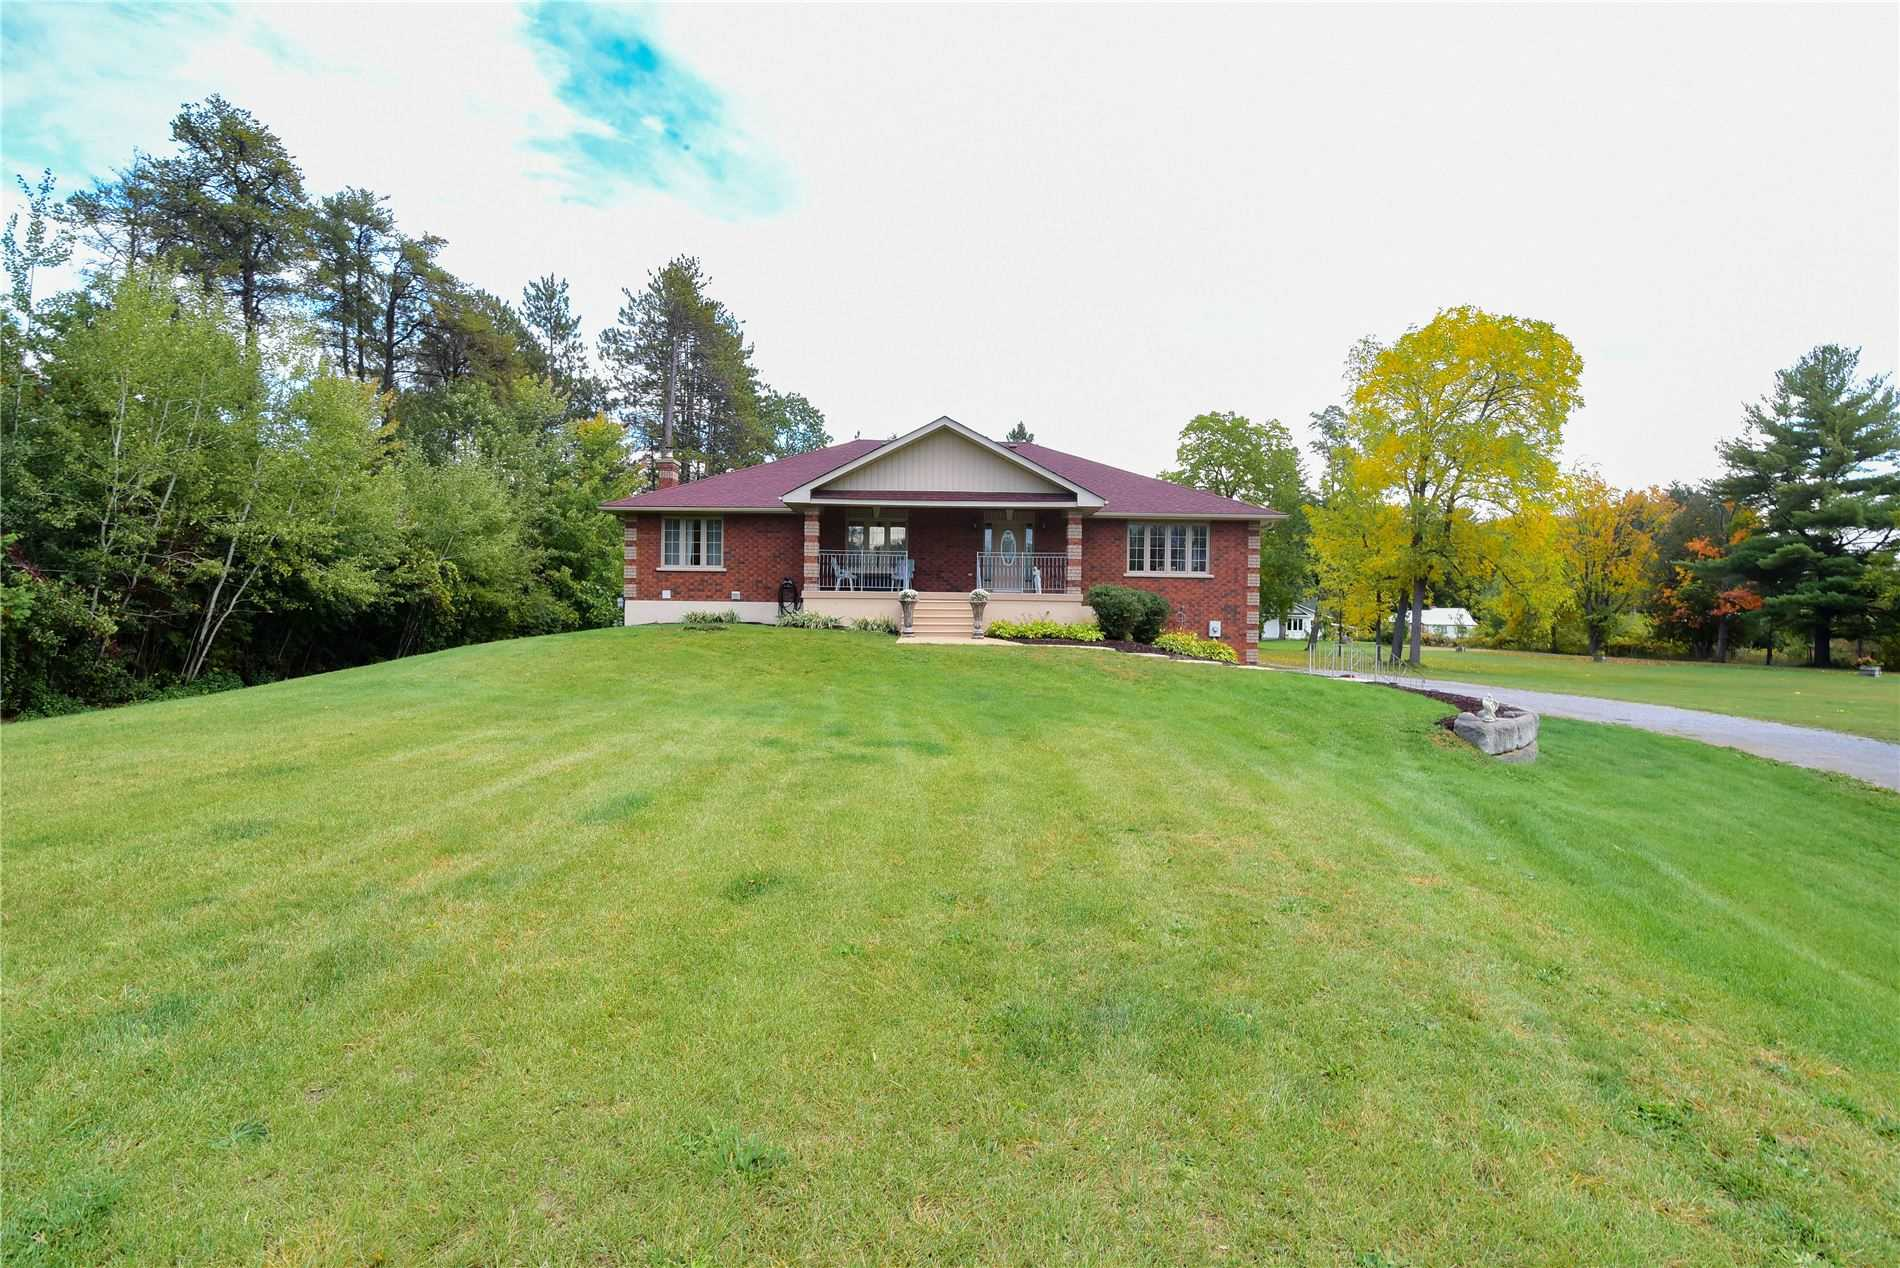 428 Pefferlaw Rd, Georgina, Ontario L0E 1N0, 4 Bedrooms Bedrooms, 11 Rooms Rooms,4 BathroomsBathrooms,Detached,For Sale,Pefferlaw,N4956071